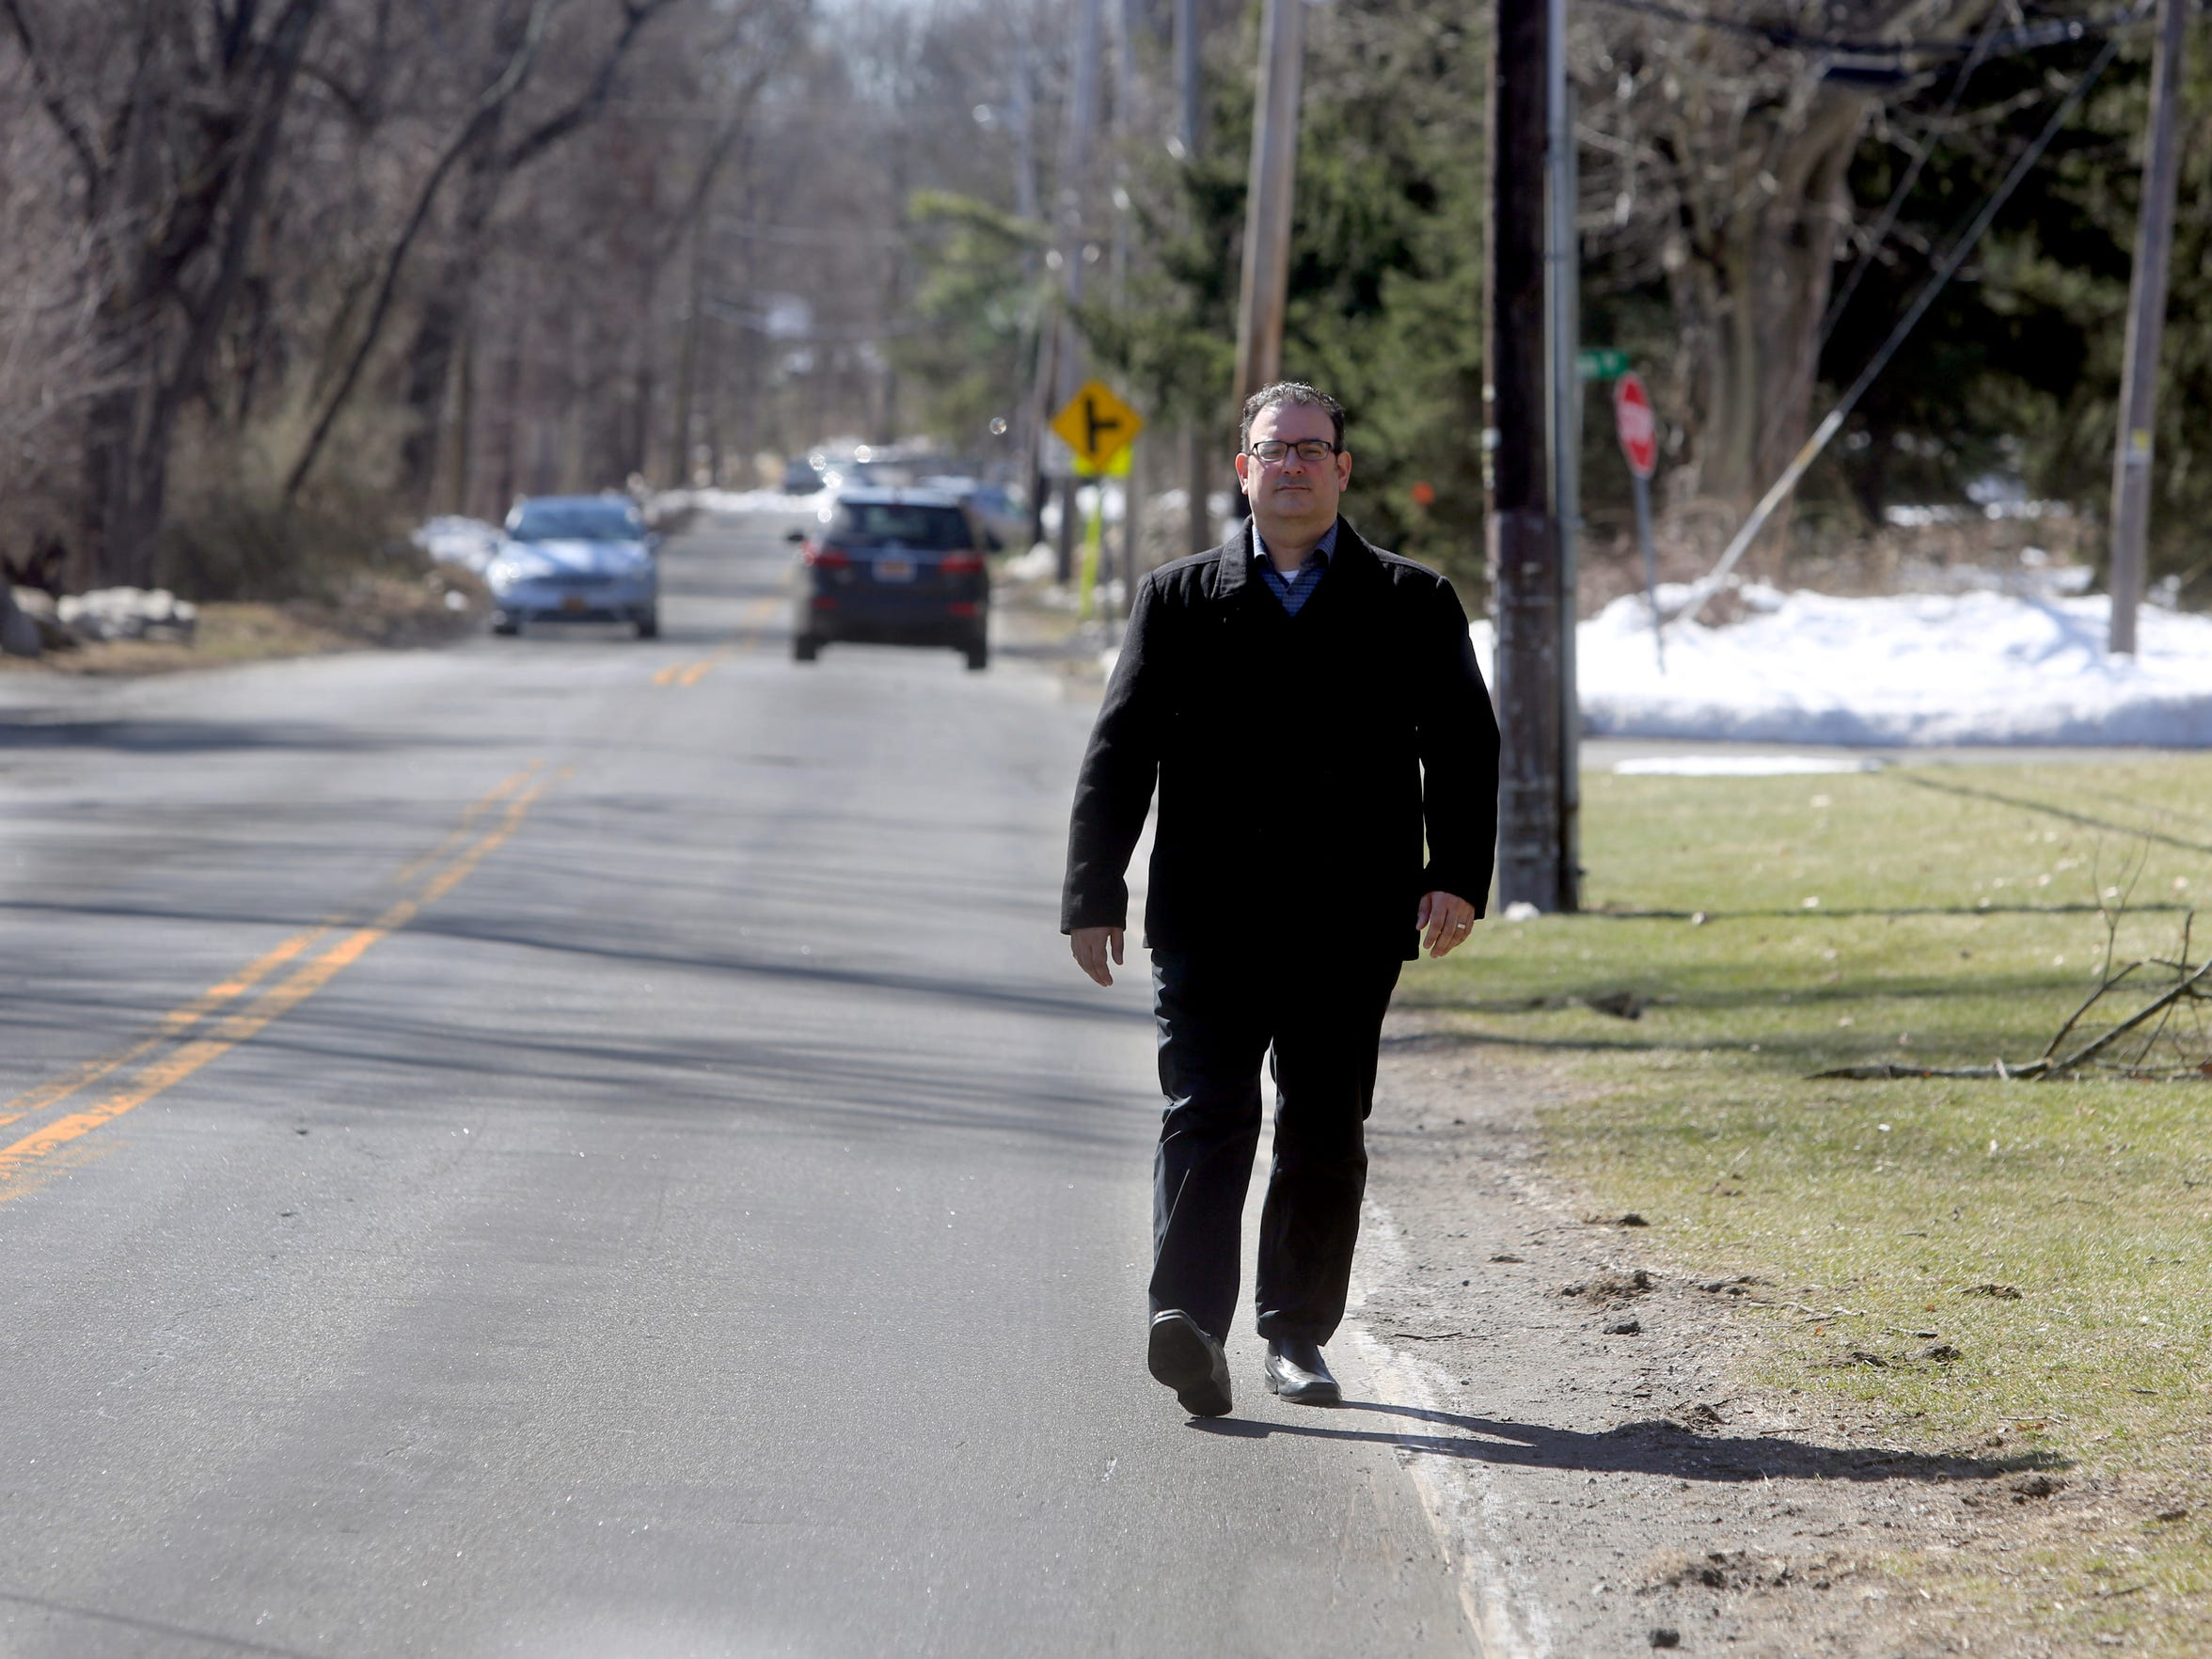 Airmont Mayor Philip Gigante walks along Cherry Lane near village hall on March 19, 2018. Gigante says code enforcement and the village building moratorium are applied equally to all residents, despite the claims of some Orthodox Jewish villagers, who say they are being held to a different standard when it comes to construction on their properties.